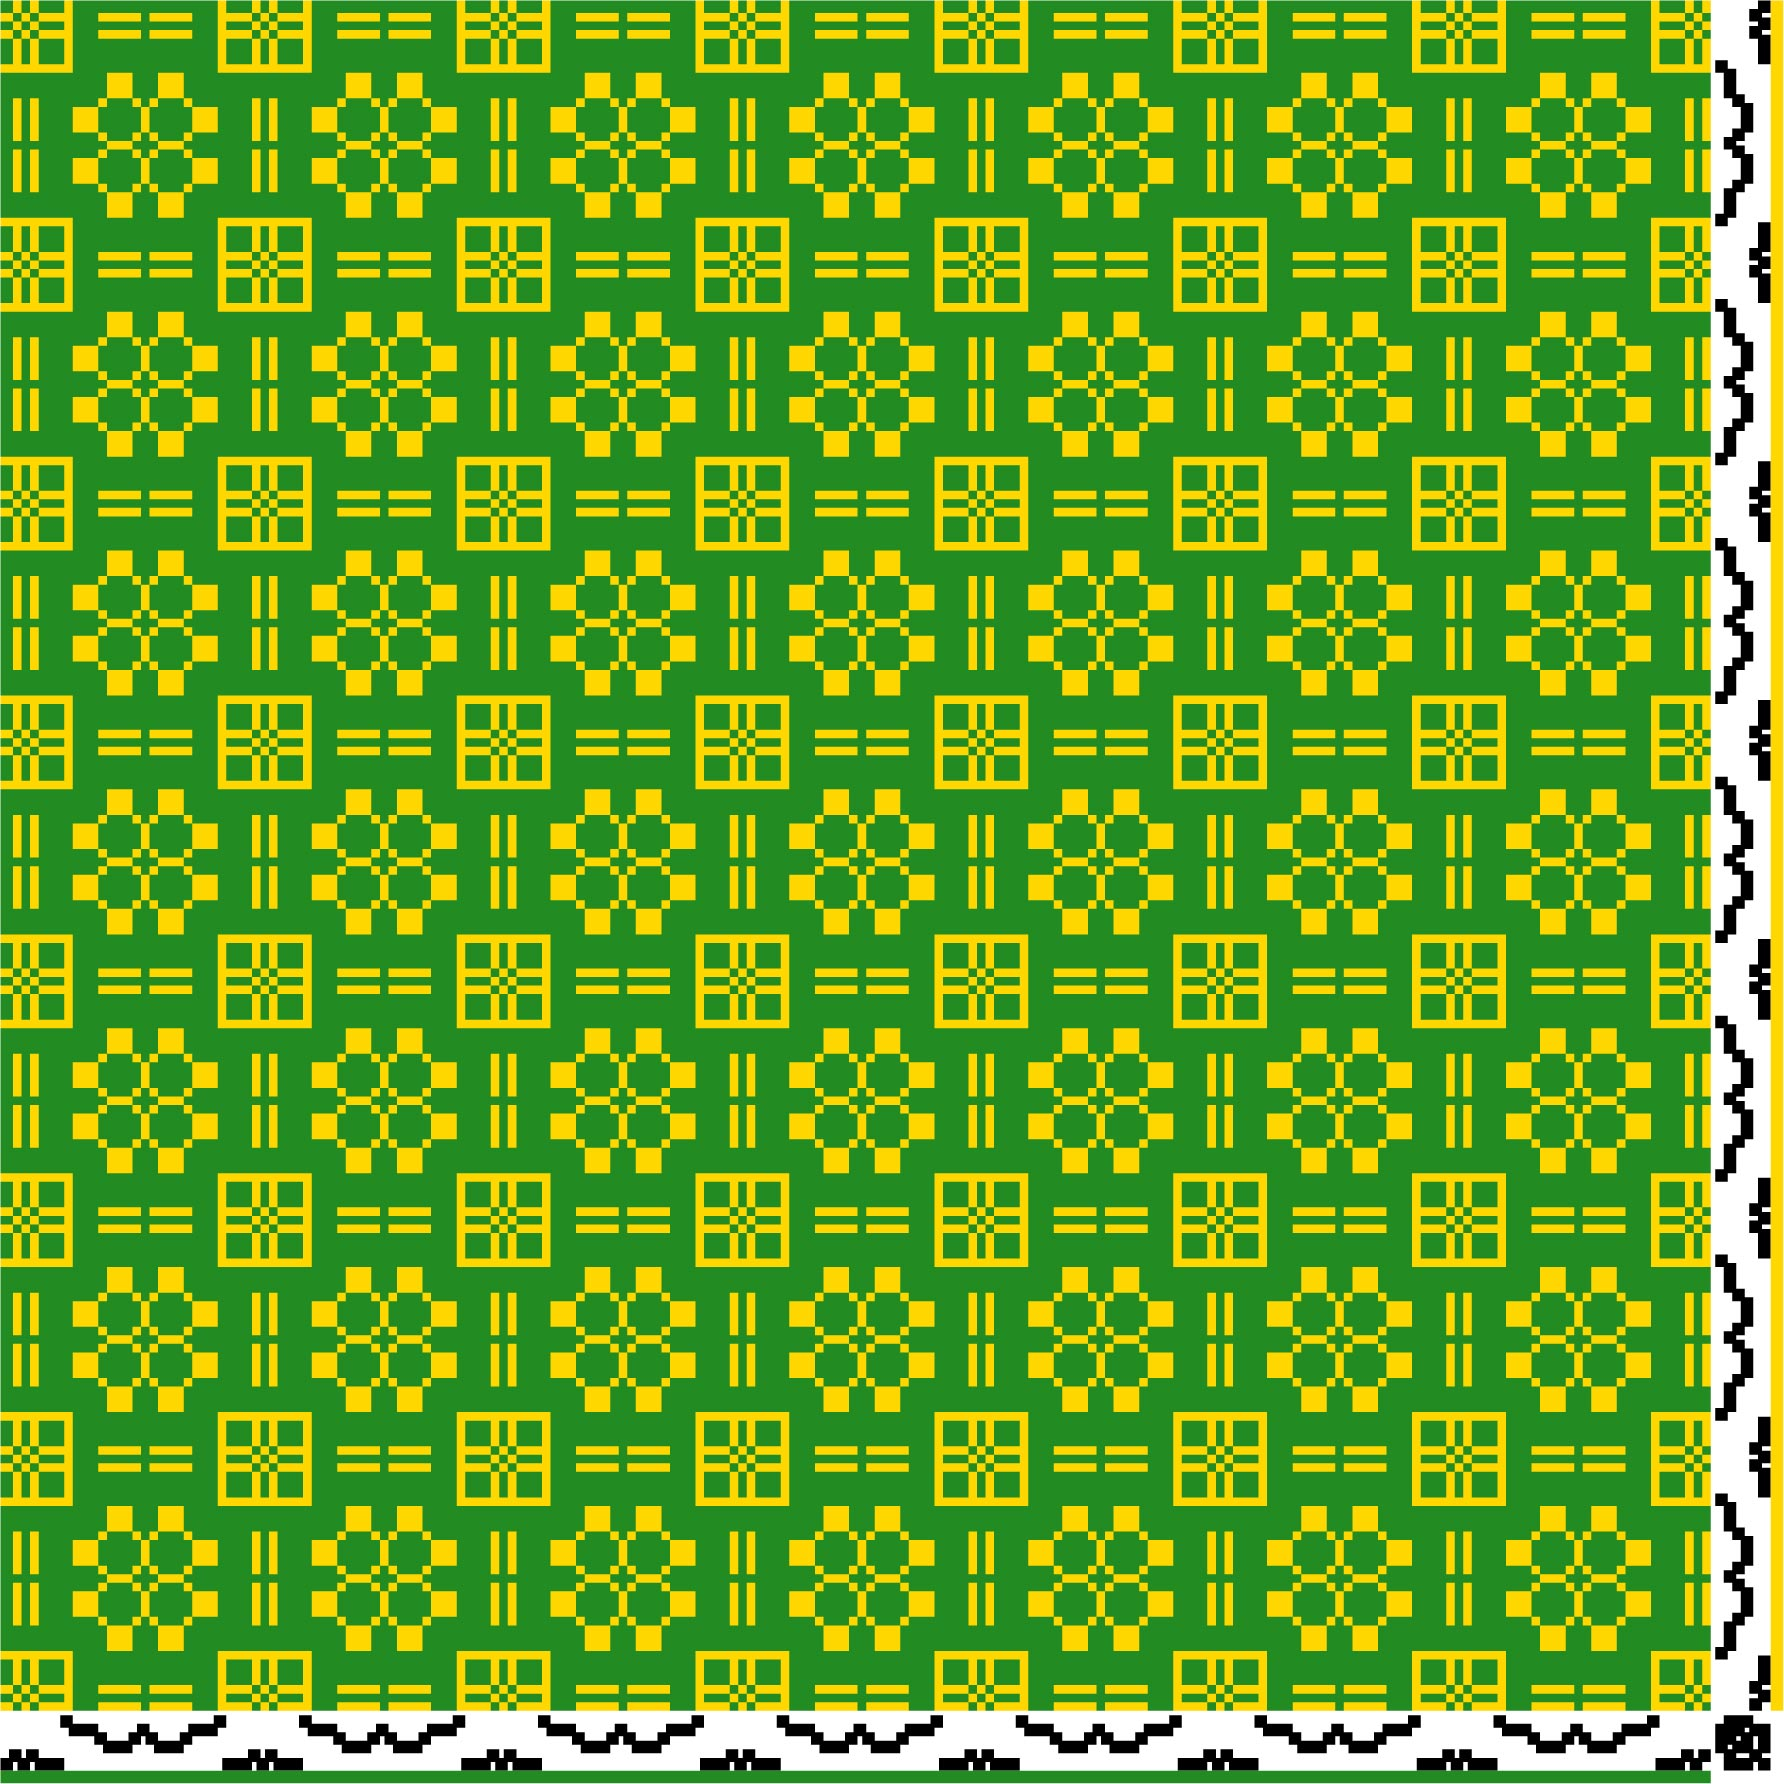 Digital Weaving 2-16